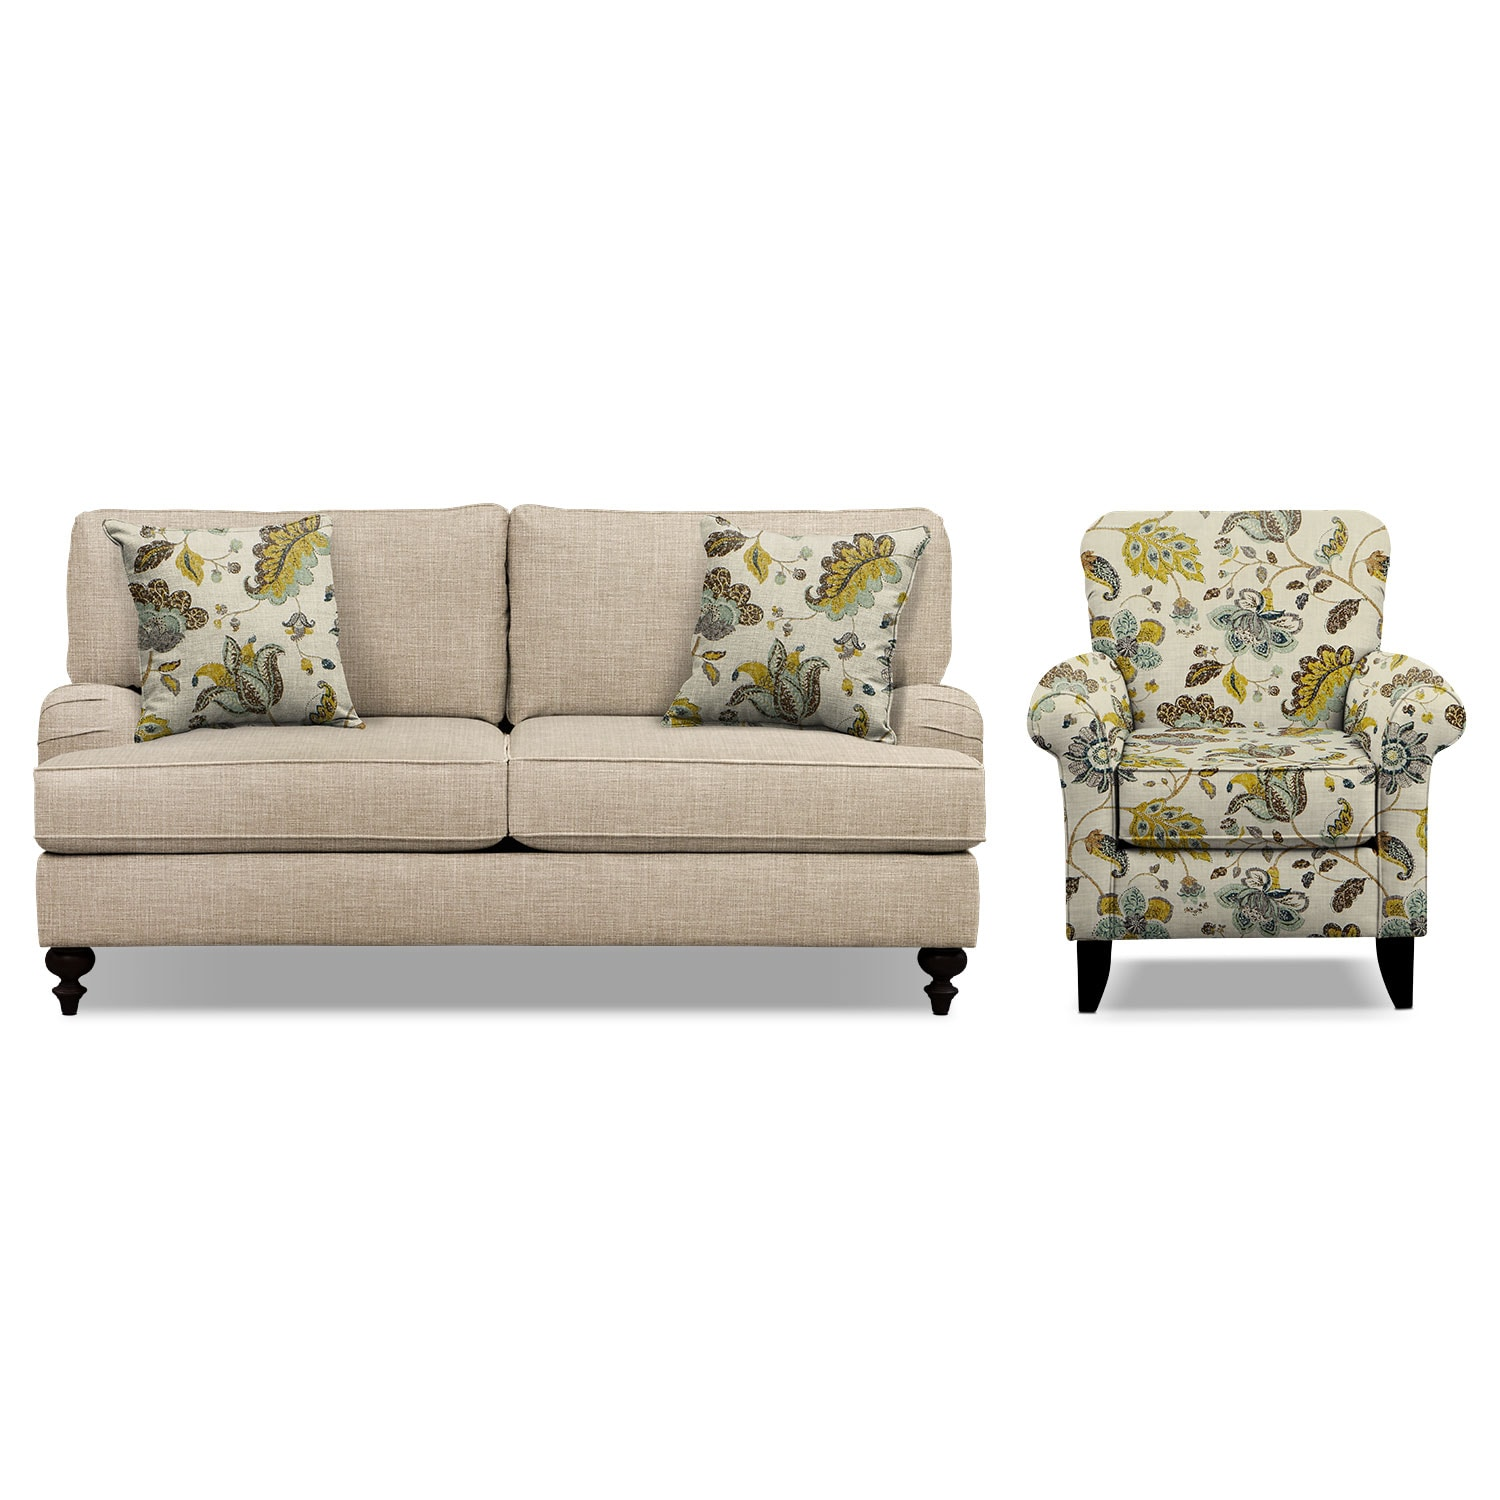 """Avery Taupe 74"""" Innerspring Sleeper Sofa and Accent Chair Set"""